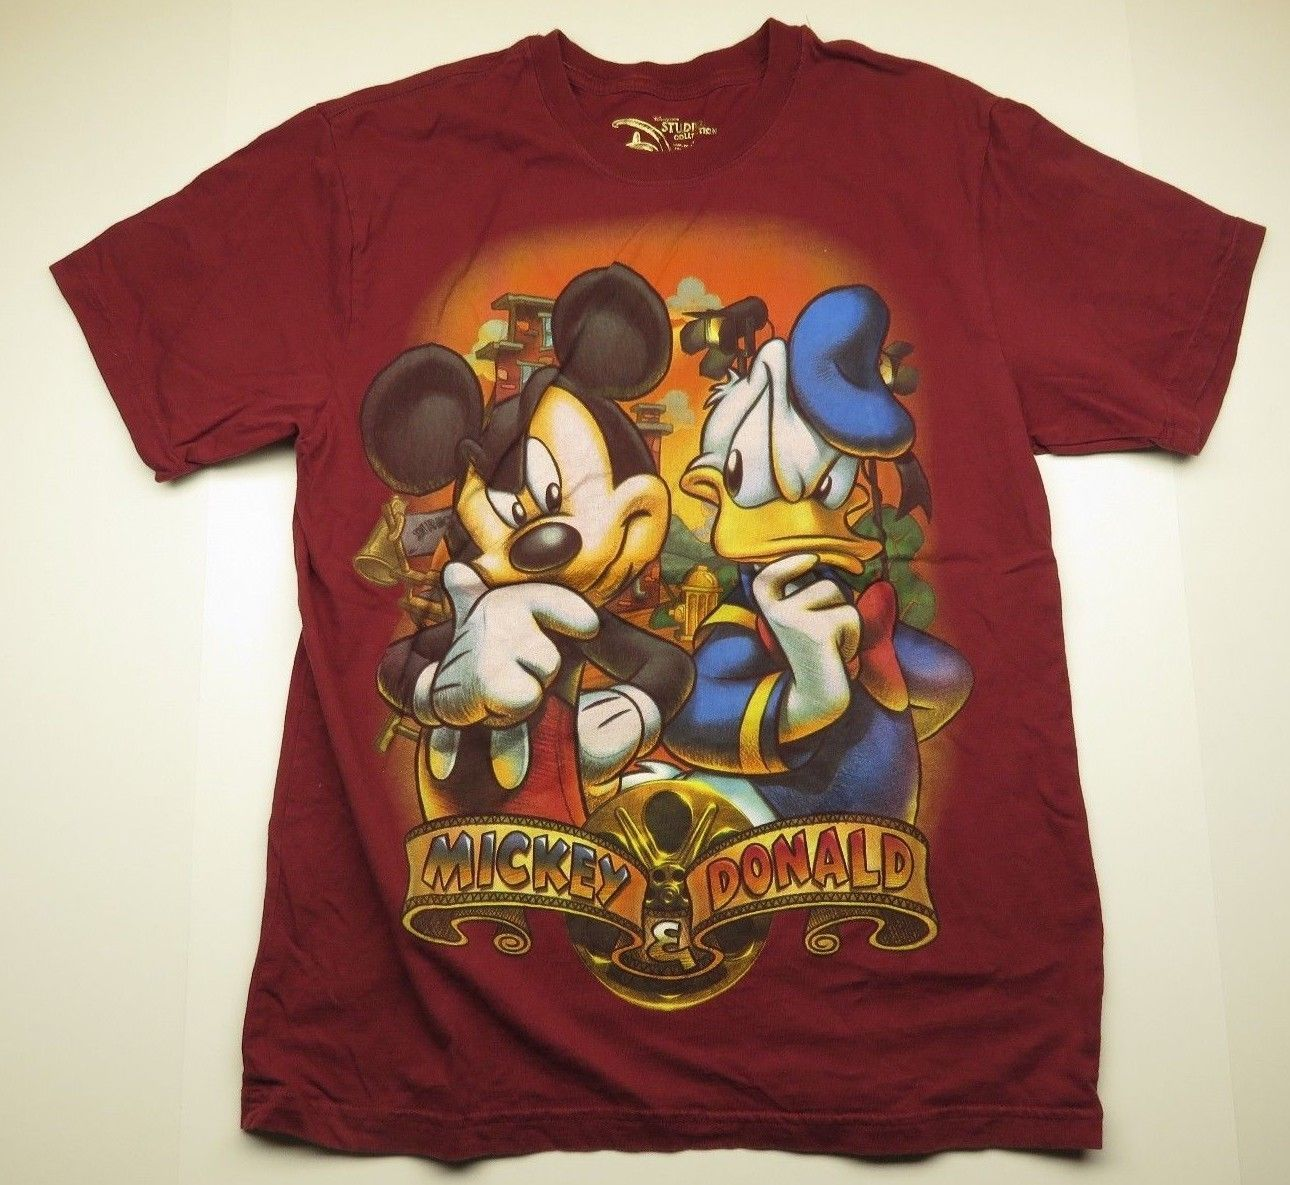 09f7844f S l1600. S l1600. Previous. DISNEY Studio Collection Mickey Mouse & Donald  Duck Graphic T-Shirt Adult Size L